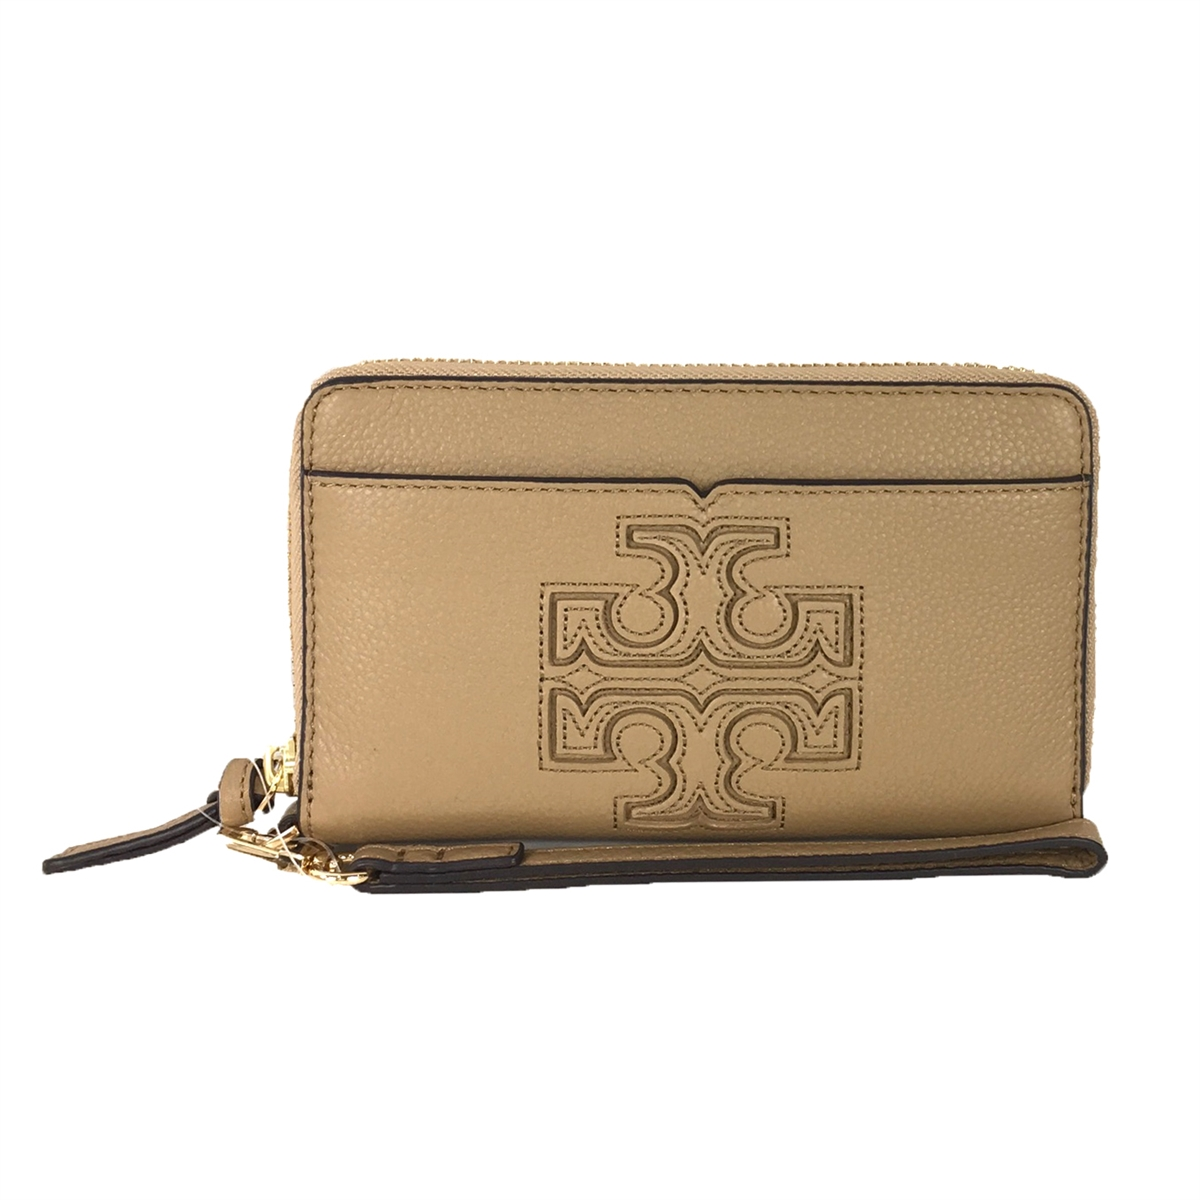 check out 39b1c 16391 Tory Burch Harper iPhone 7 / 6 Leather Wristlet Wallet, Vintage Camel